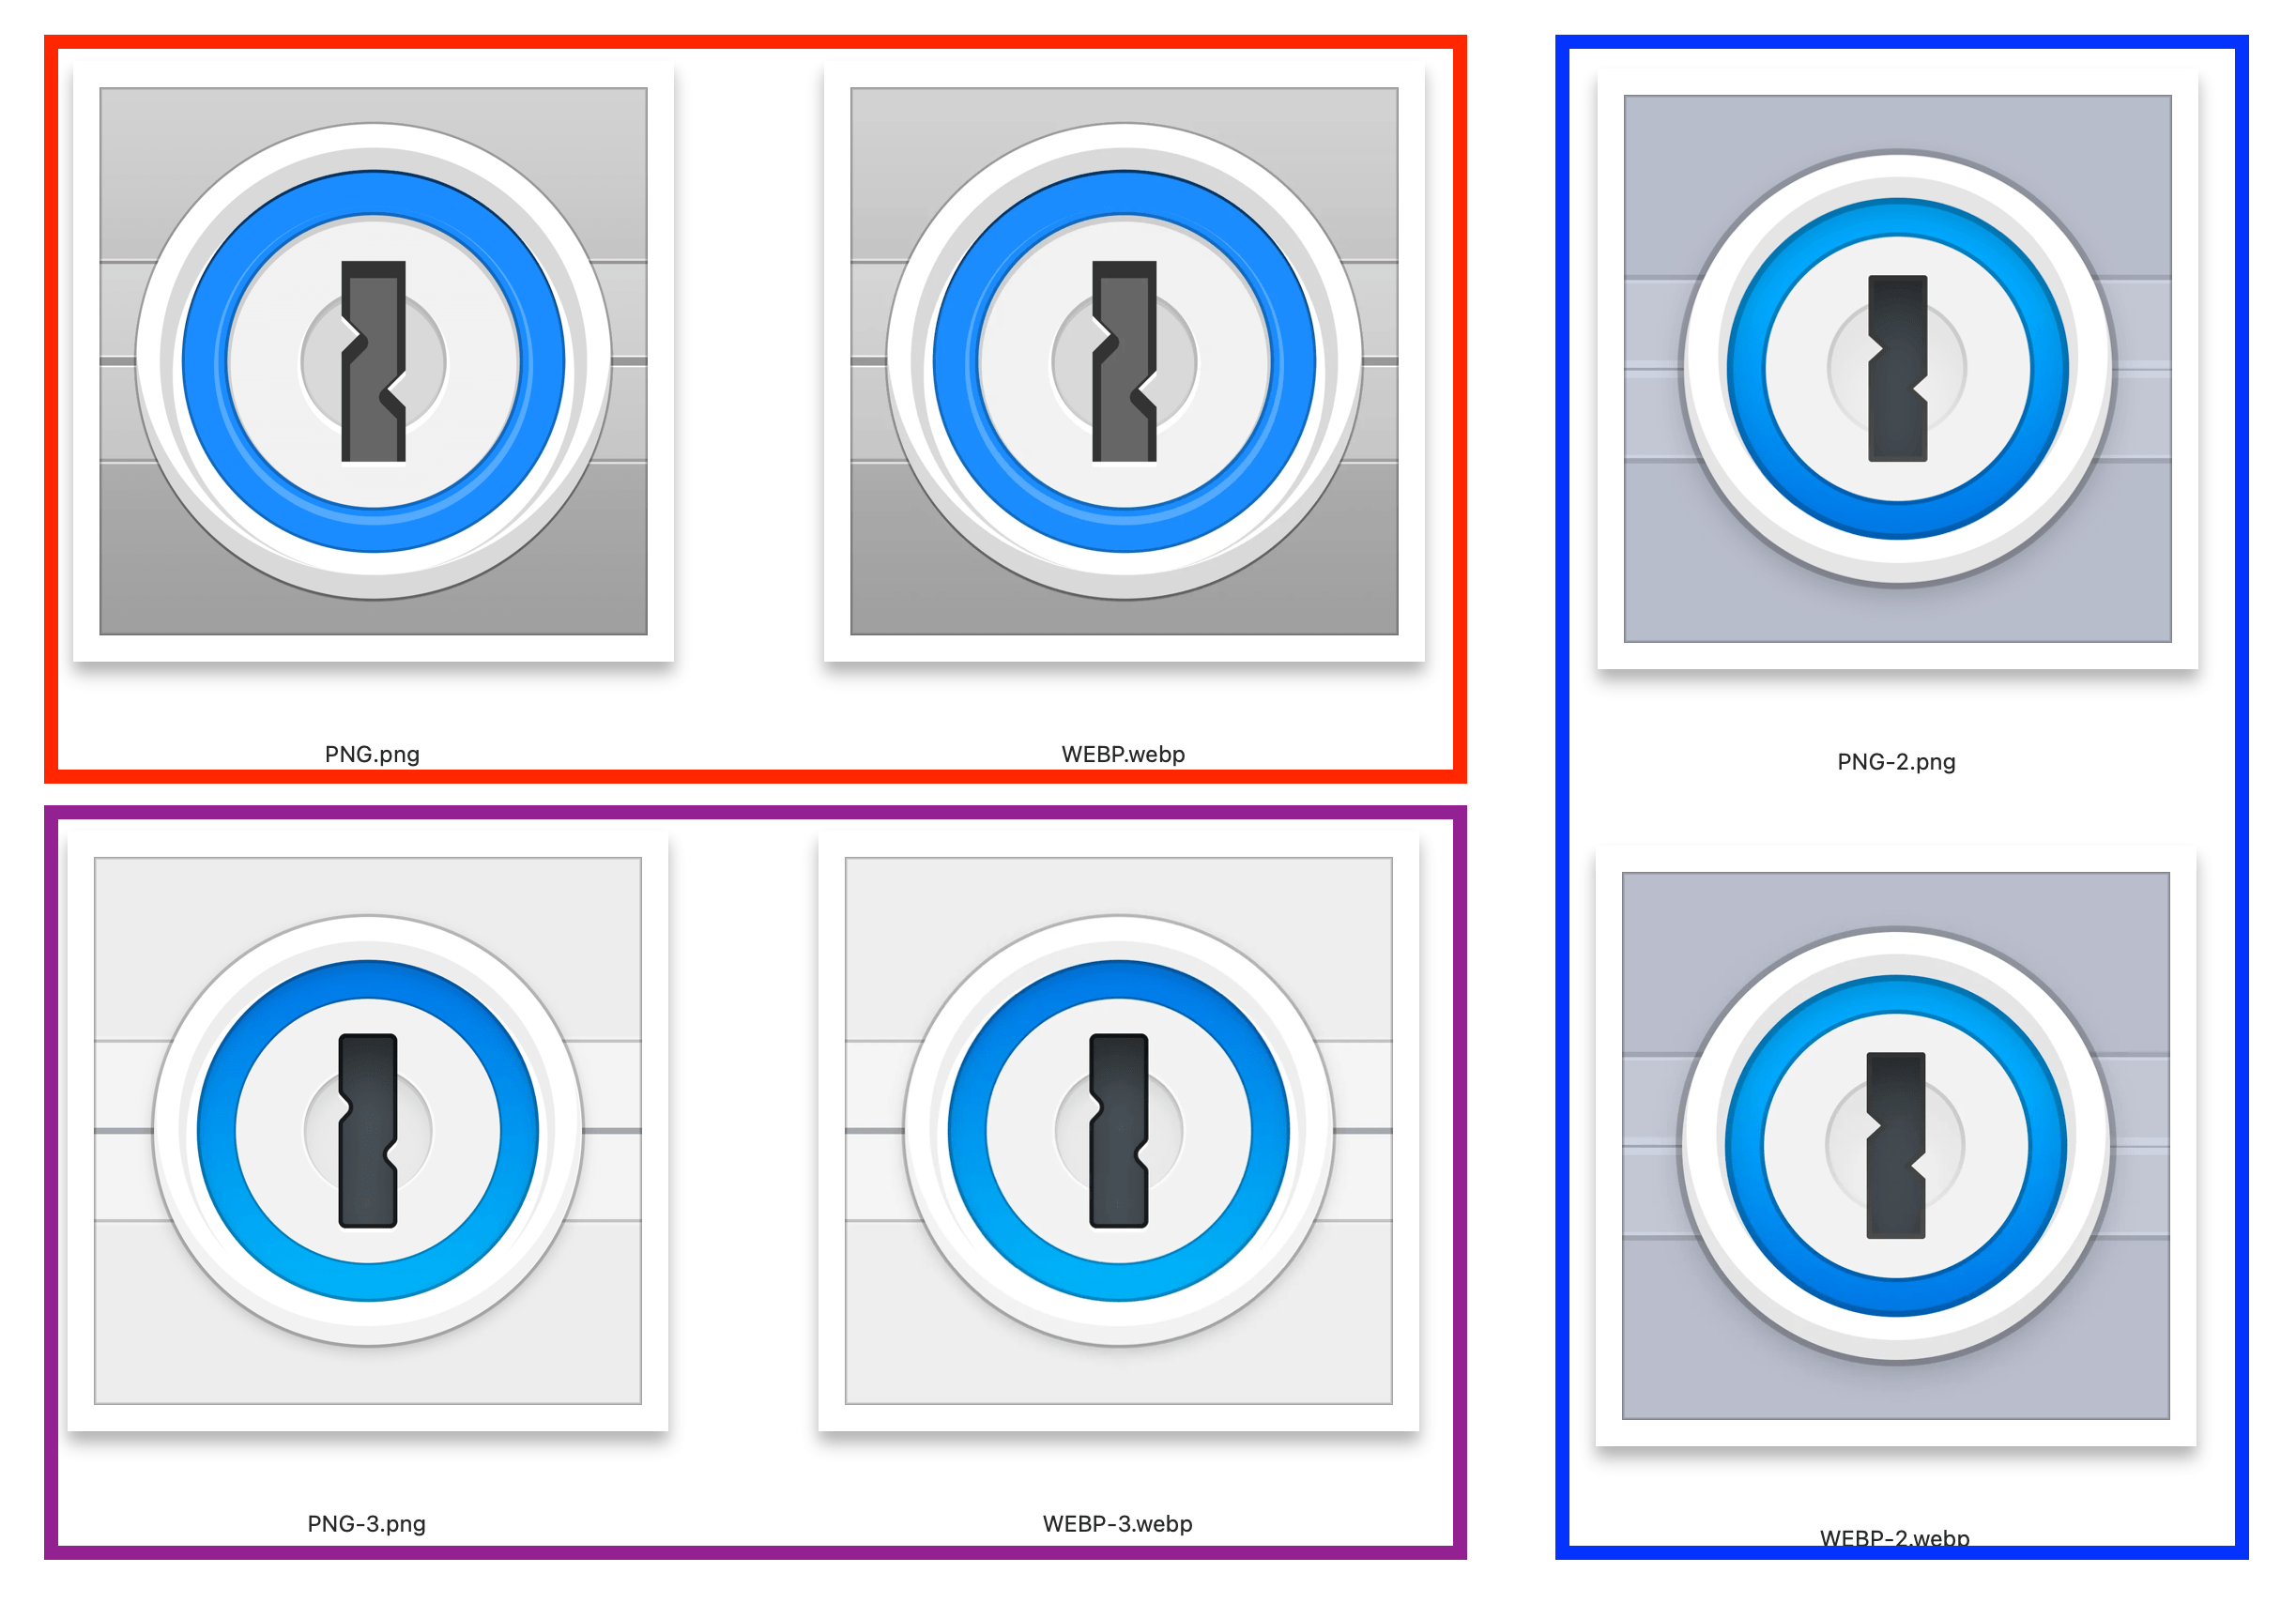 """3 versions of the 1Password icon, each with a PNG and WEBP version, illustrating how well the compression worked for icons design with a """"flat� aesthetic."""